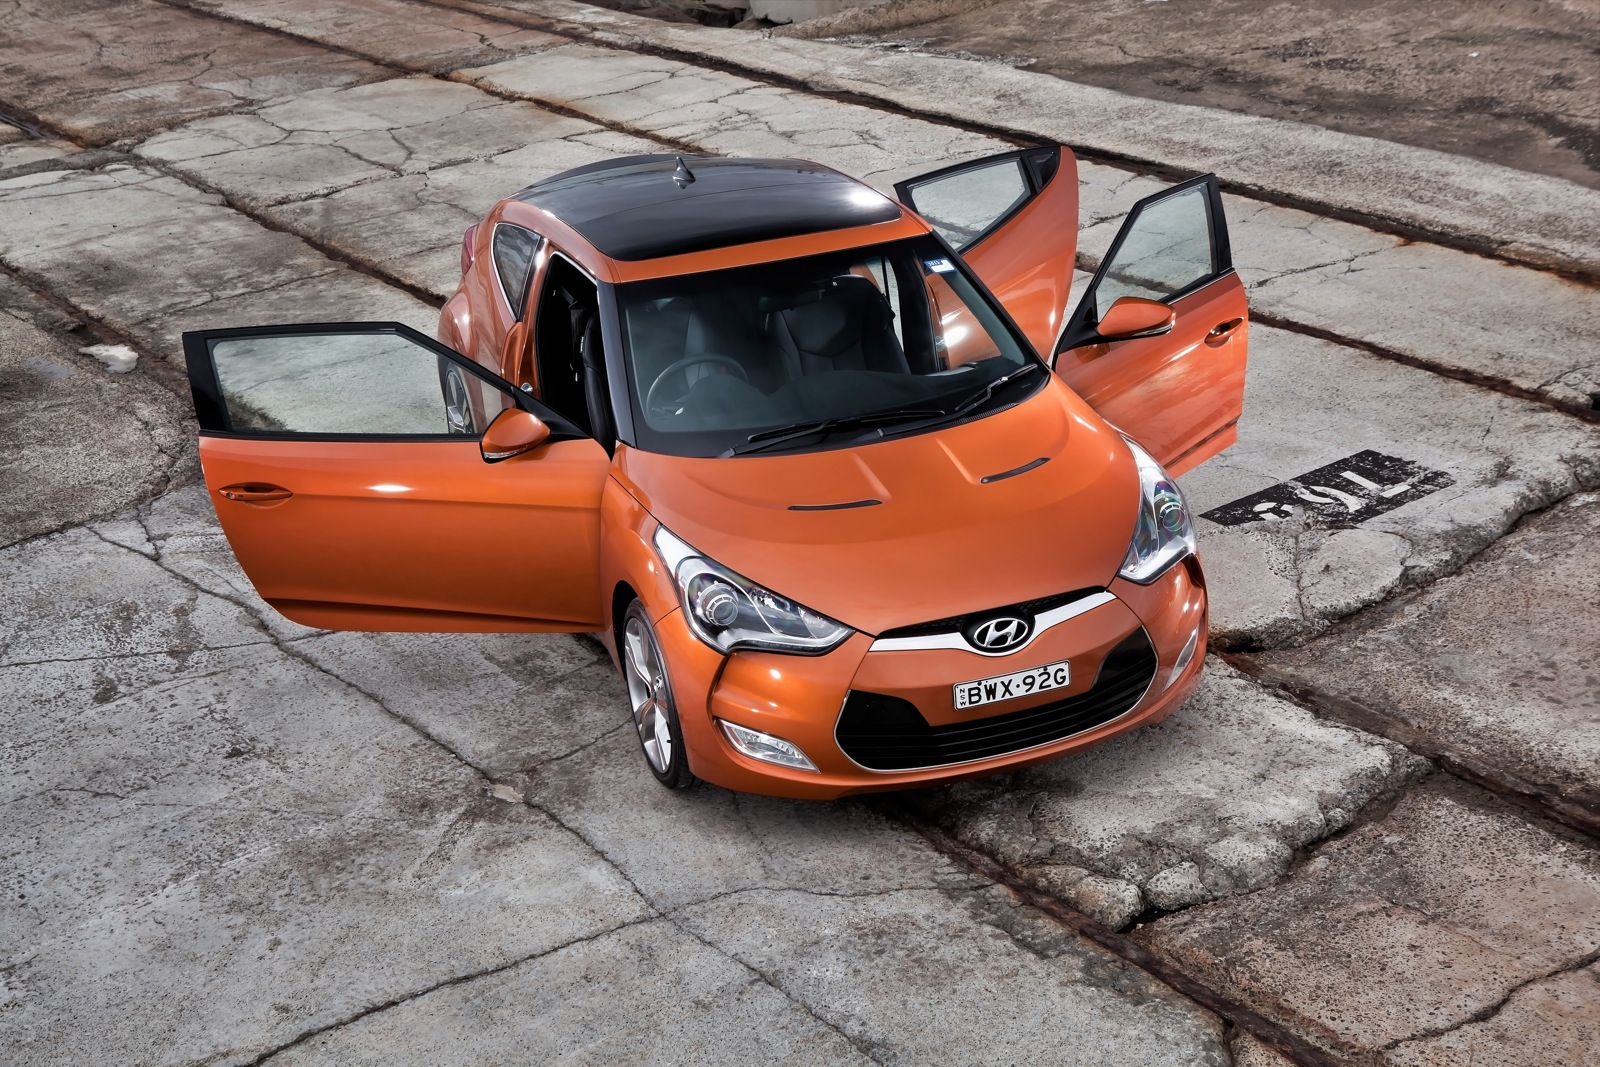 Luxury Sports Cars >> Hyundai Veloster Review - photos | CarAdvice